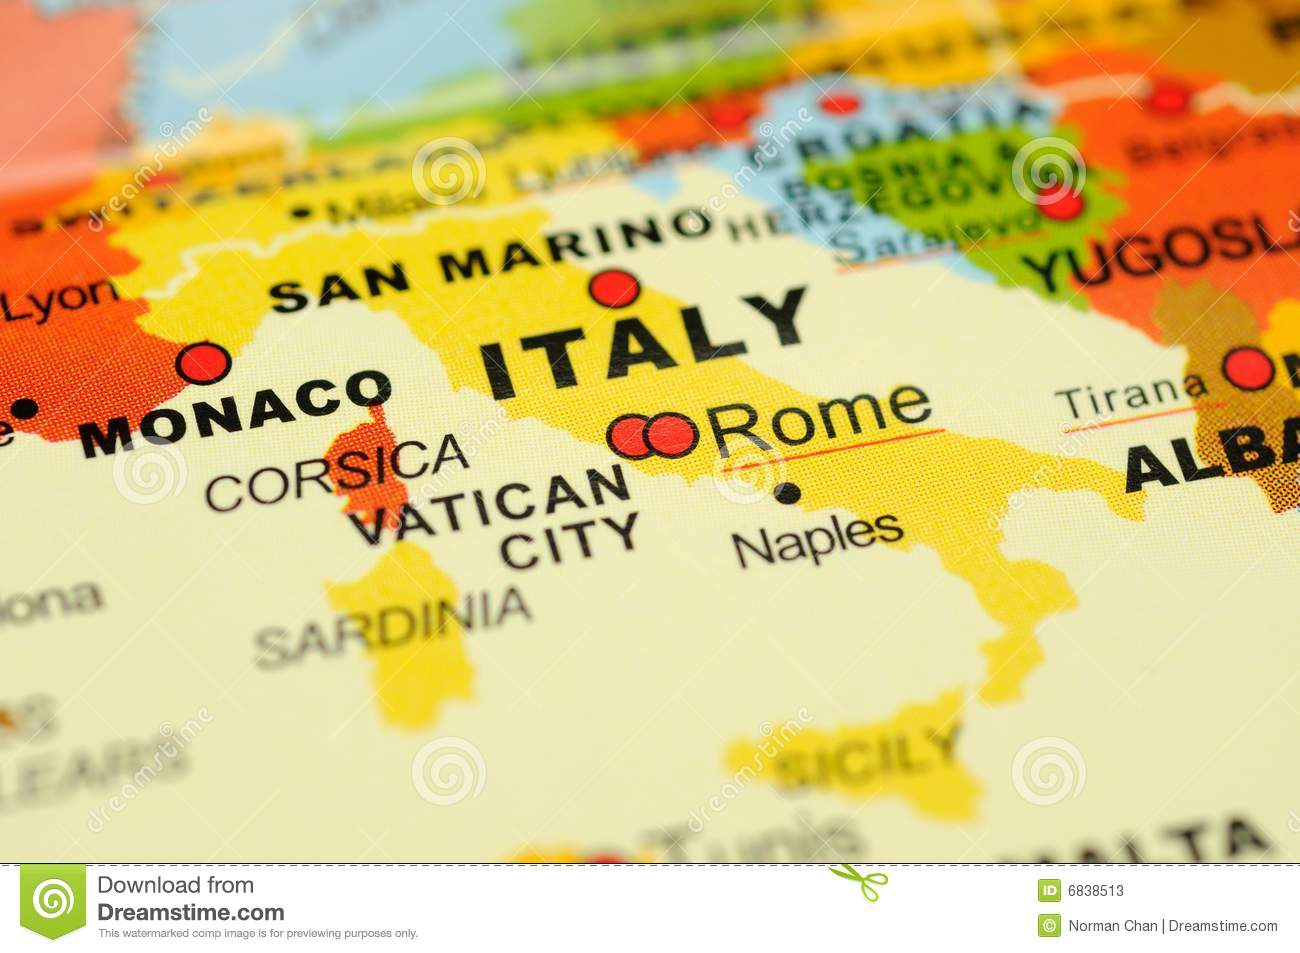 Italy on map stock image. Image of city, europe, country - 6838513 on santa maria delle grazie milan italy, close up map of poland, close up map of vietnam, close up map of eu, close up map of quebec, close up map of mediterranean, close up map of washington state, close up map of the world, close up map of bahamas, close up map of kuwait, close up map of venezuela, close up map of grenada, close up map of polynesia, close up map of north america, close up map of florence, close up map of ancient greece, close up map of guatemala, close up aerial view maps, close up map of nepal,